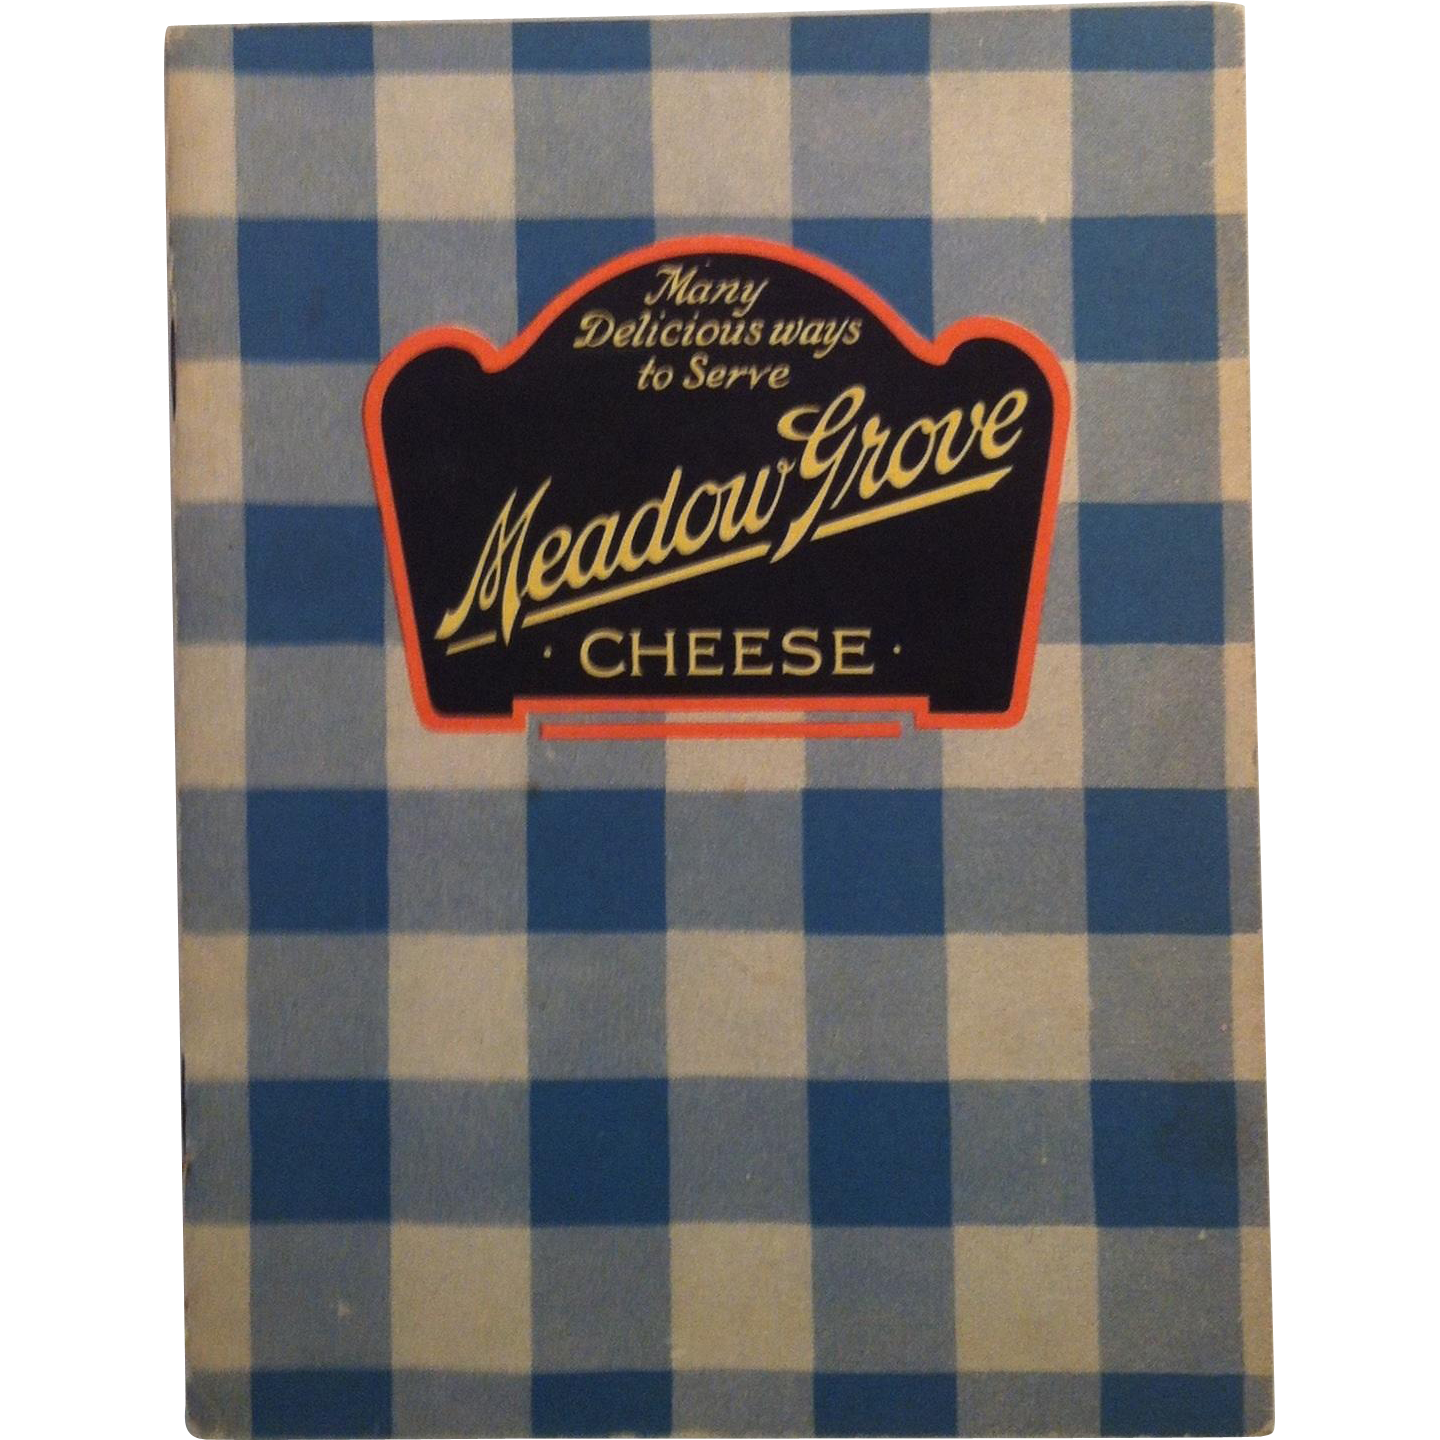 1920 Meadow Grove Cheese Recipe Booklet